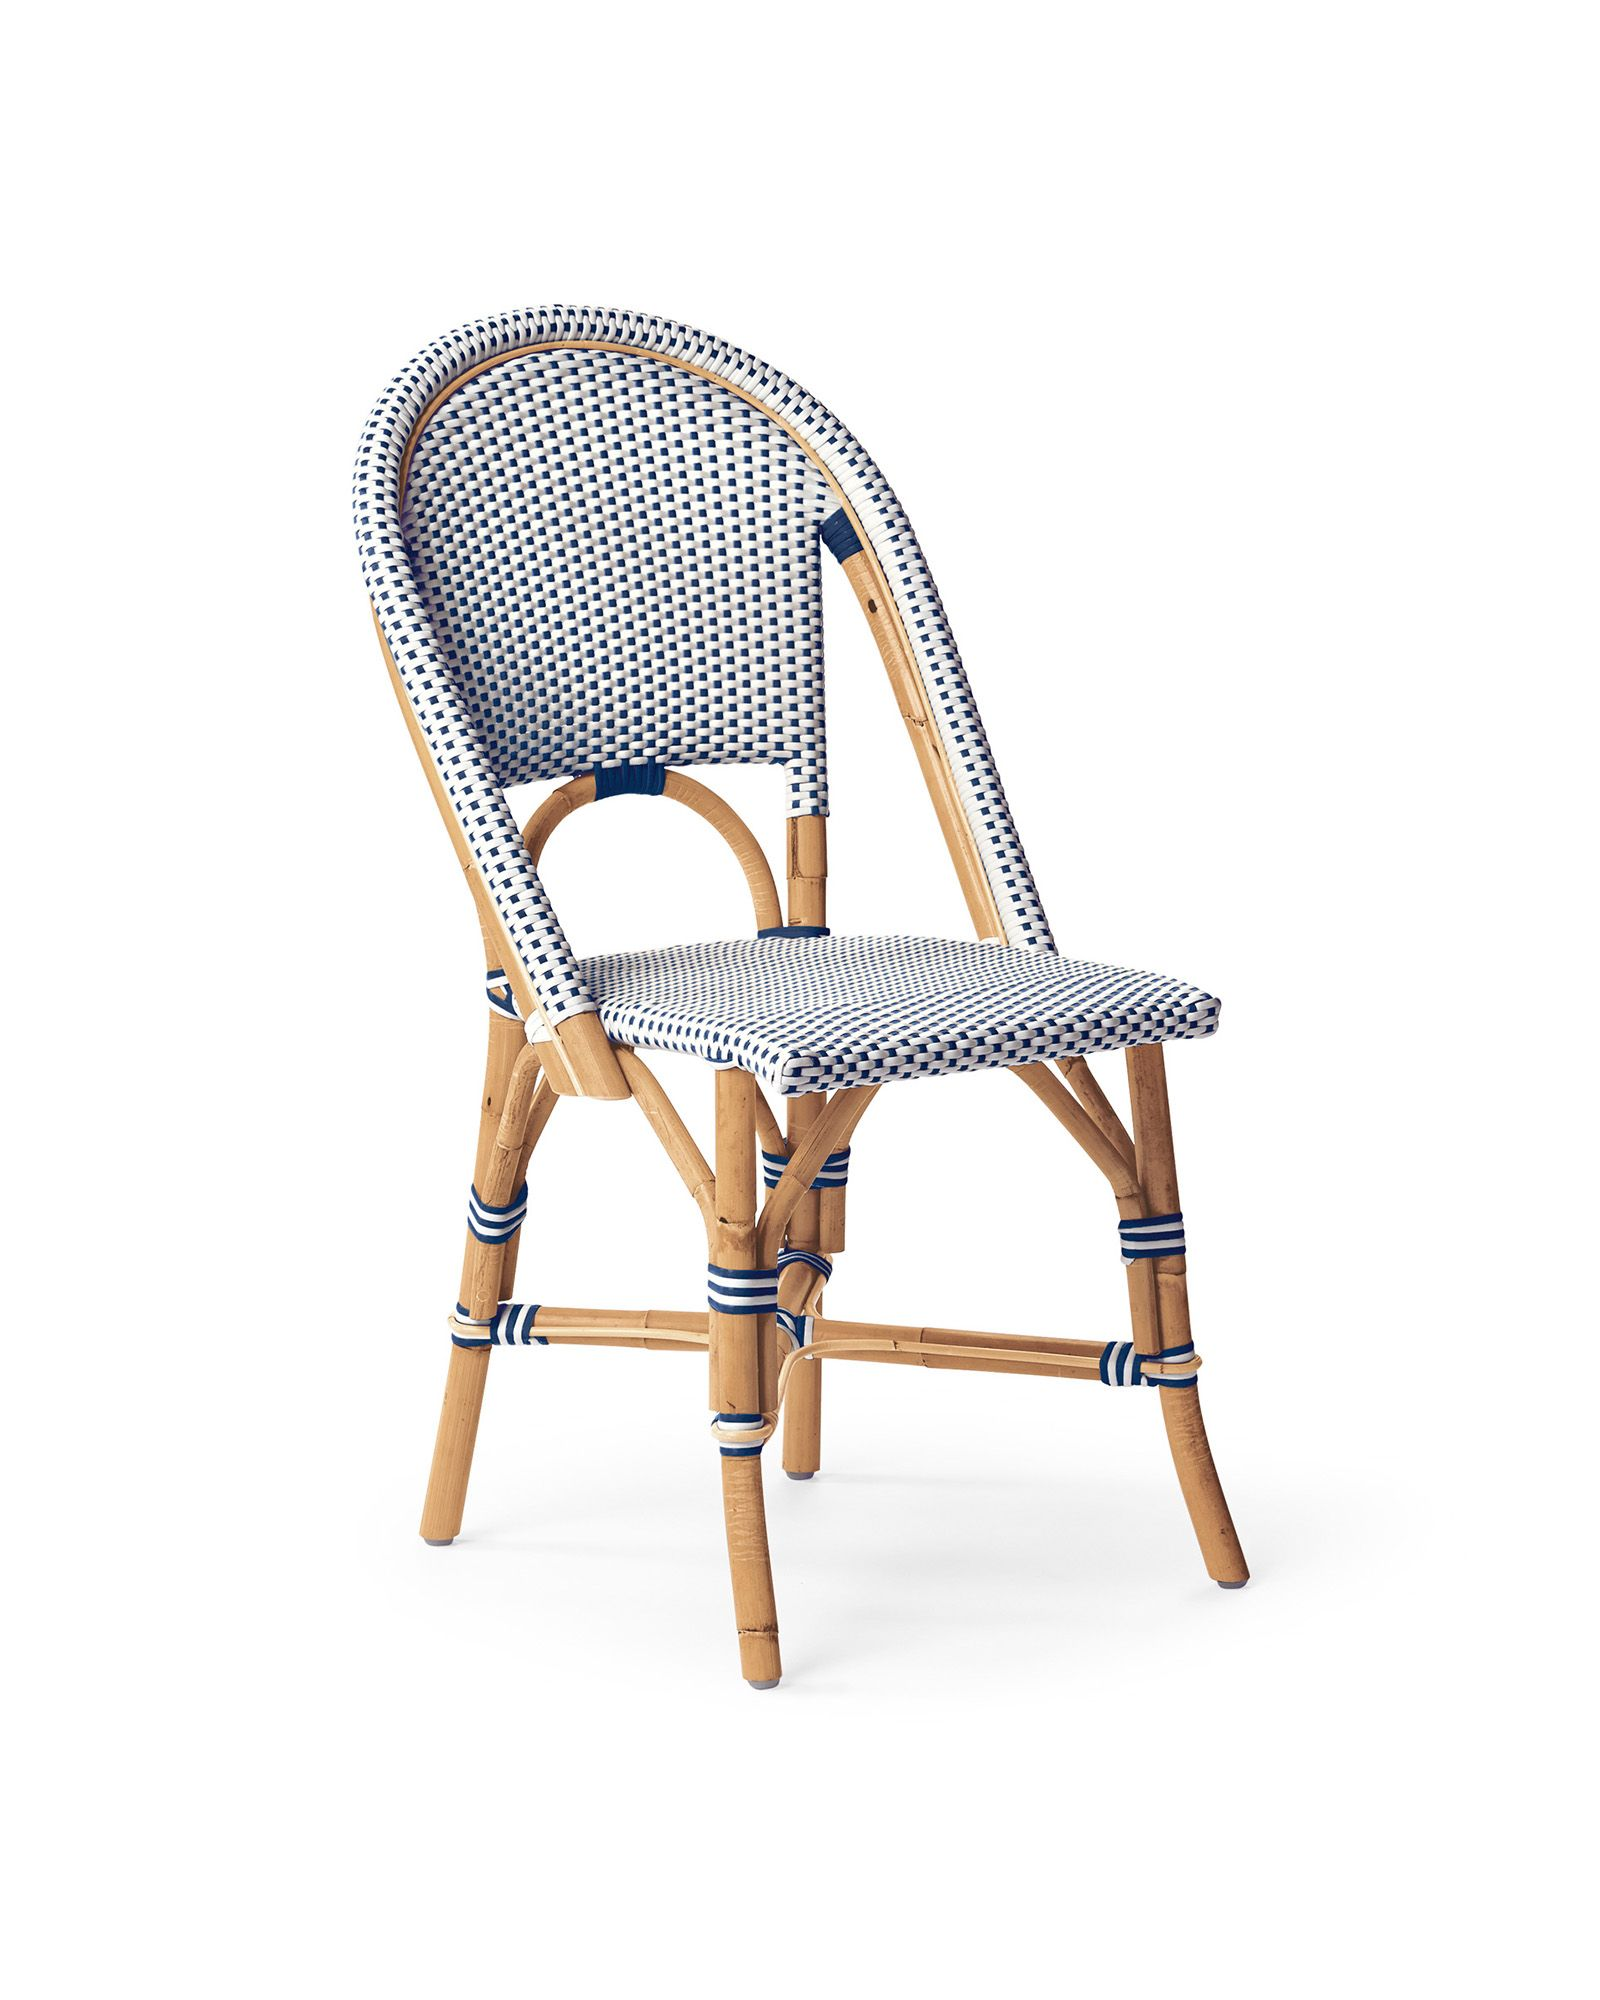 Shop the riviera side chair and browse the rest of our chairs at serena and lily we specialize in unique designer and coastal styles